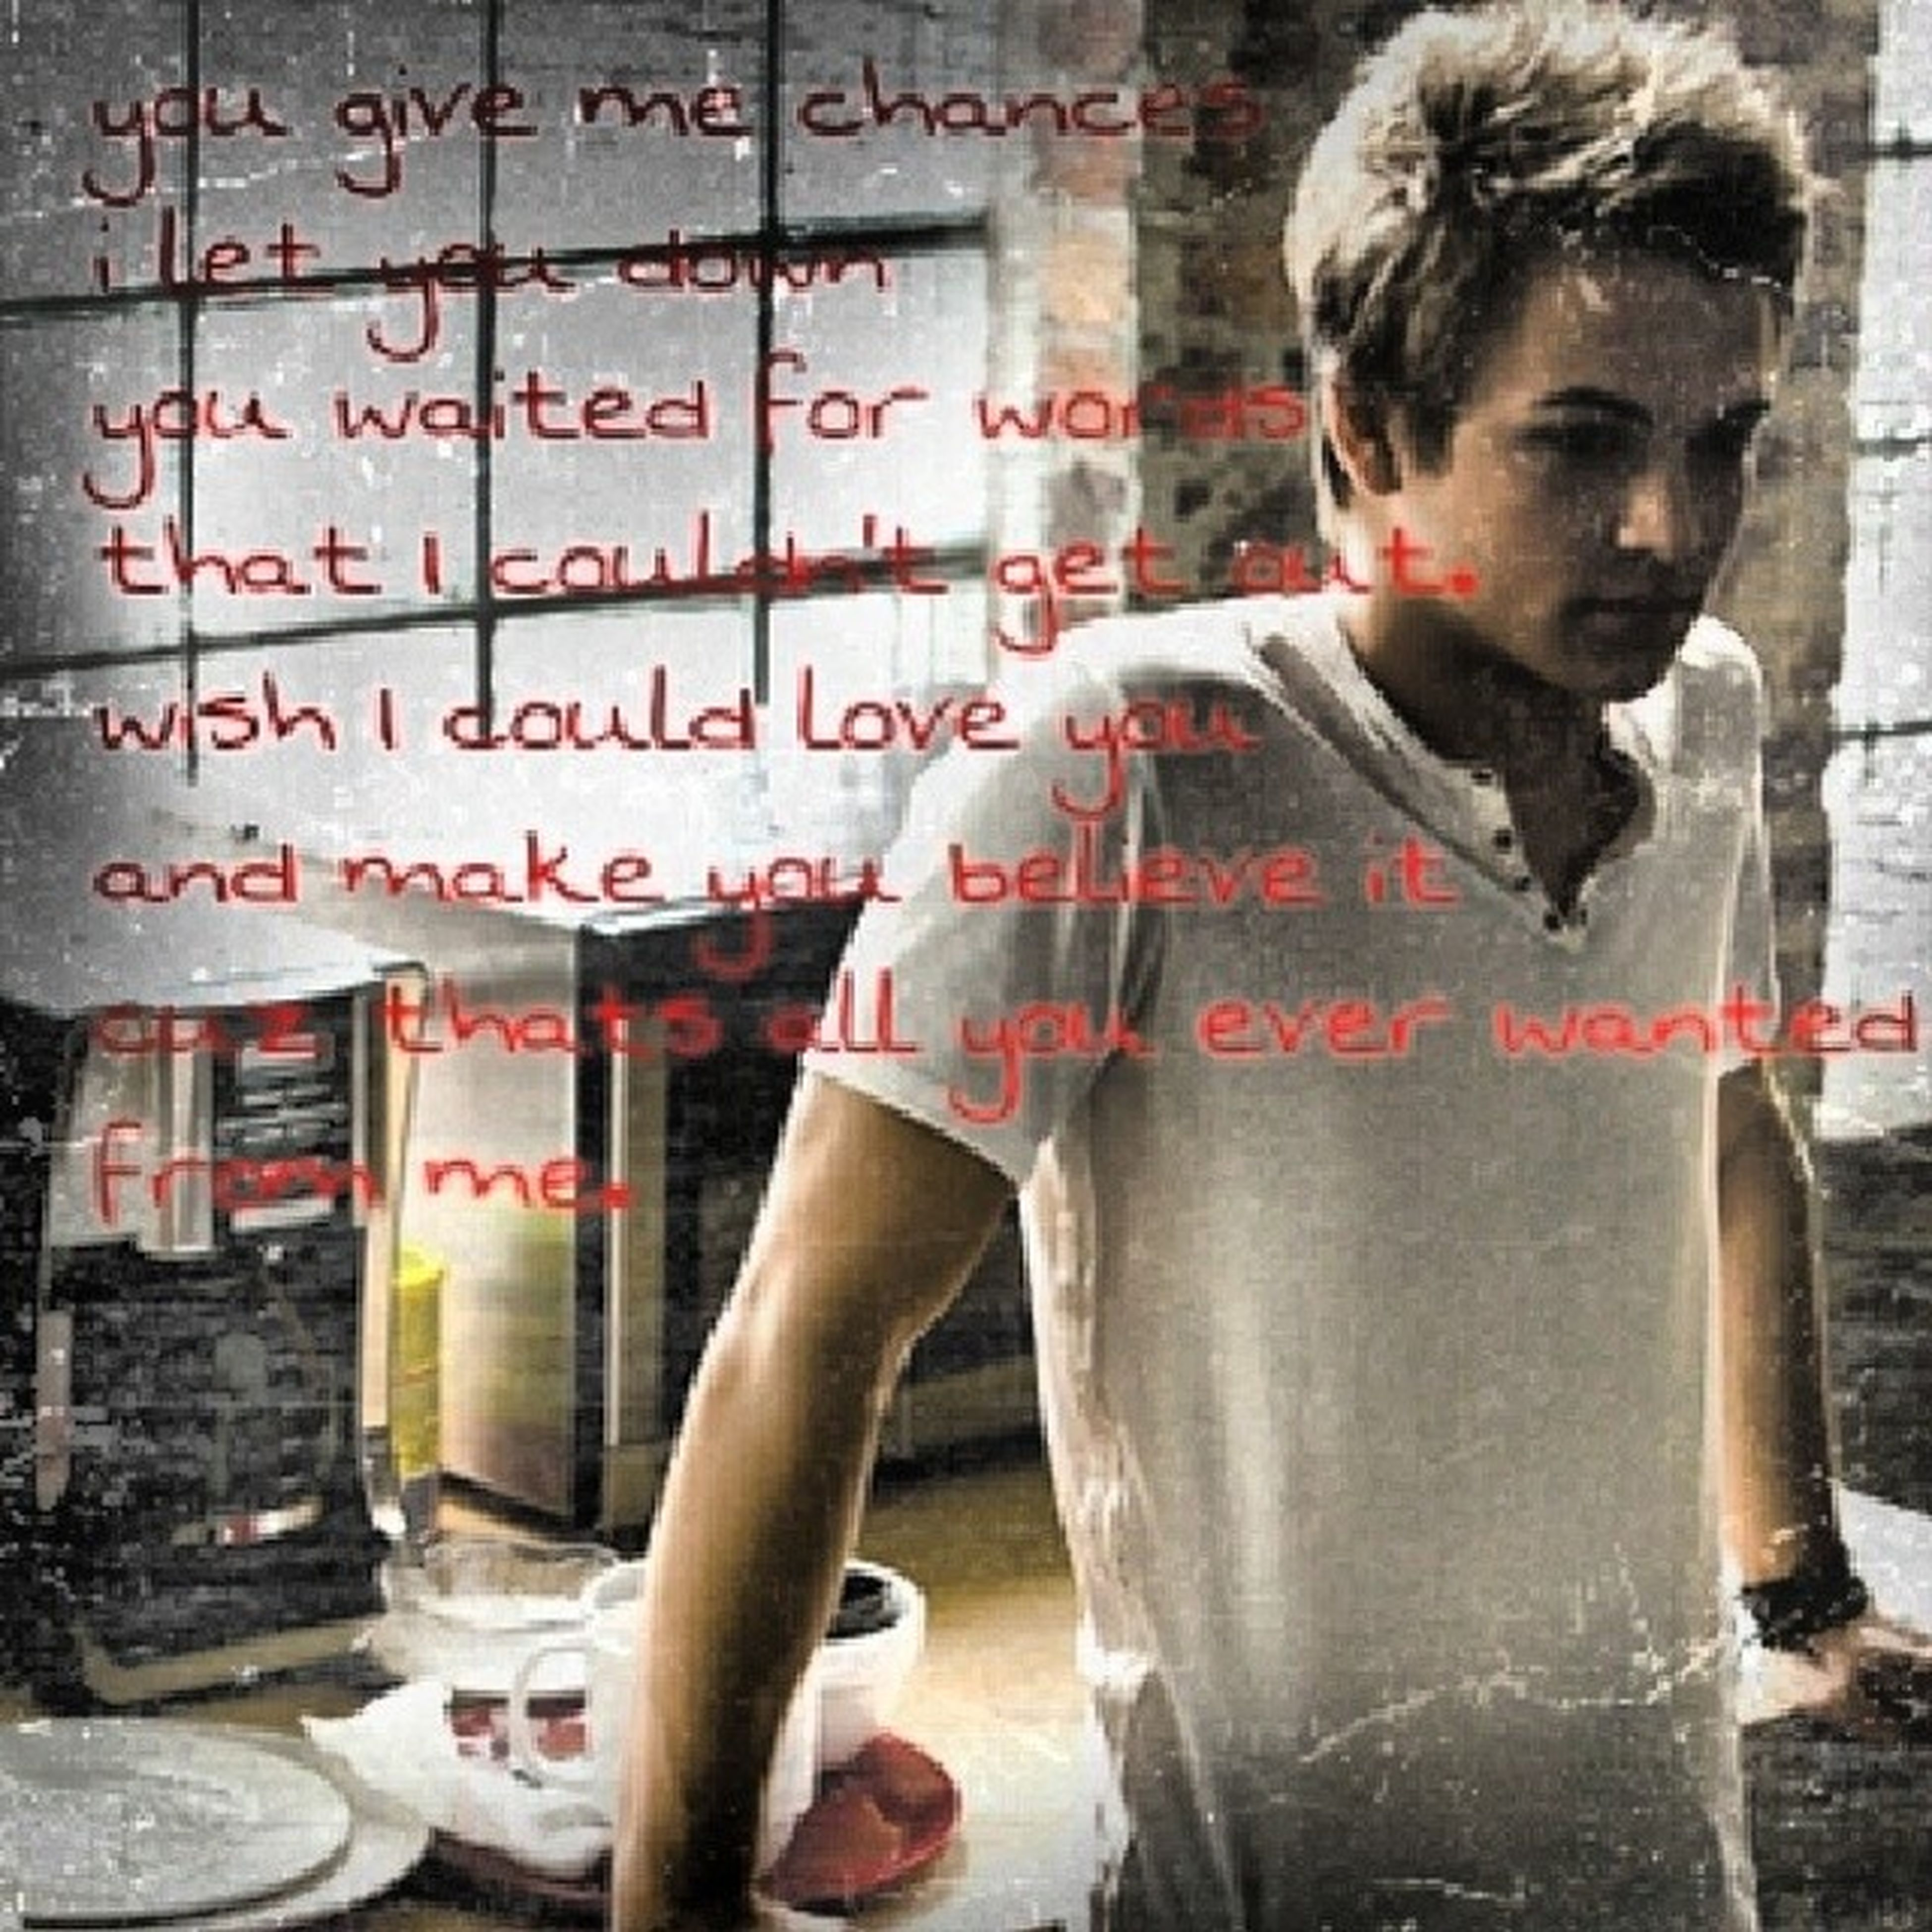 Hunterhayes Allyouever Favsong I paraphrased the song.